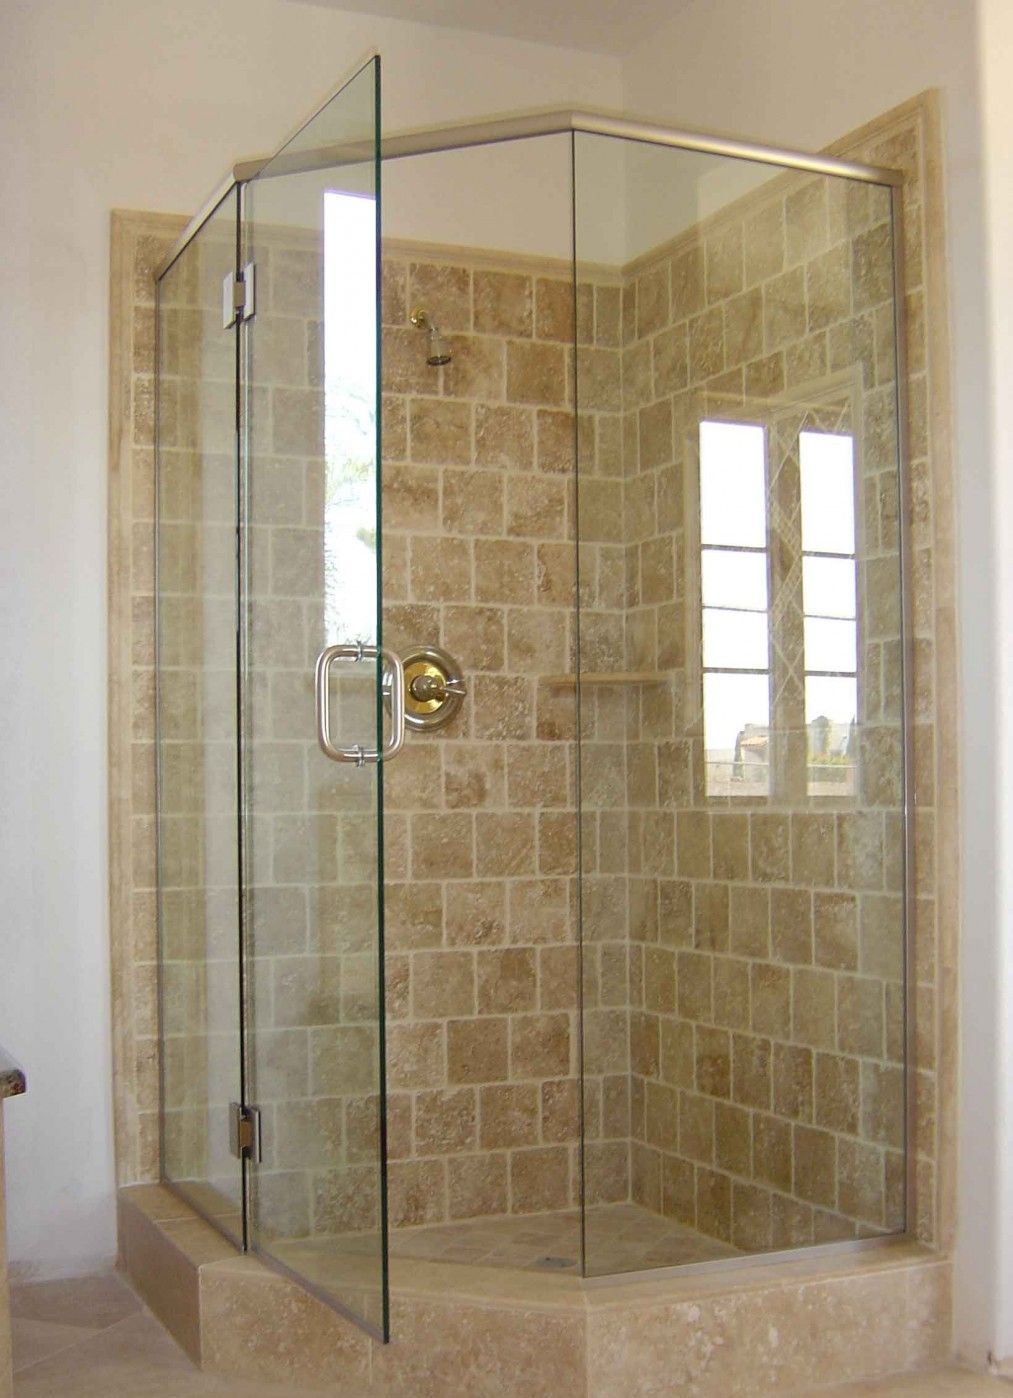 Awesome Bathroom Design With Cool Tiled Corner Showers Shower